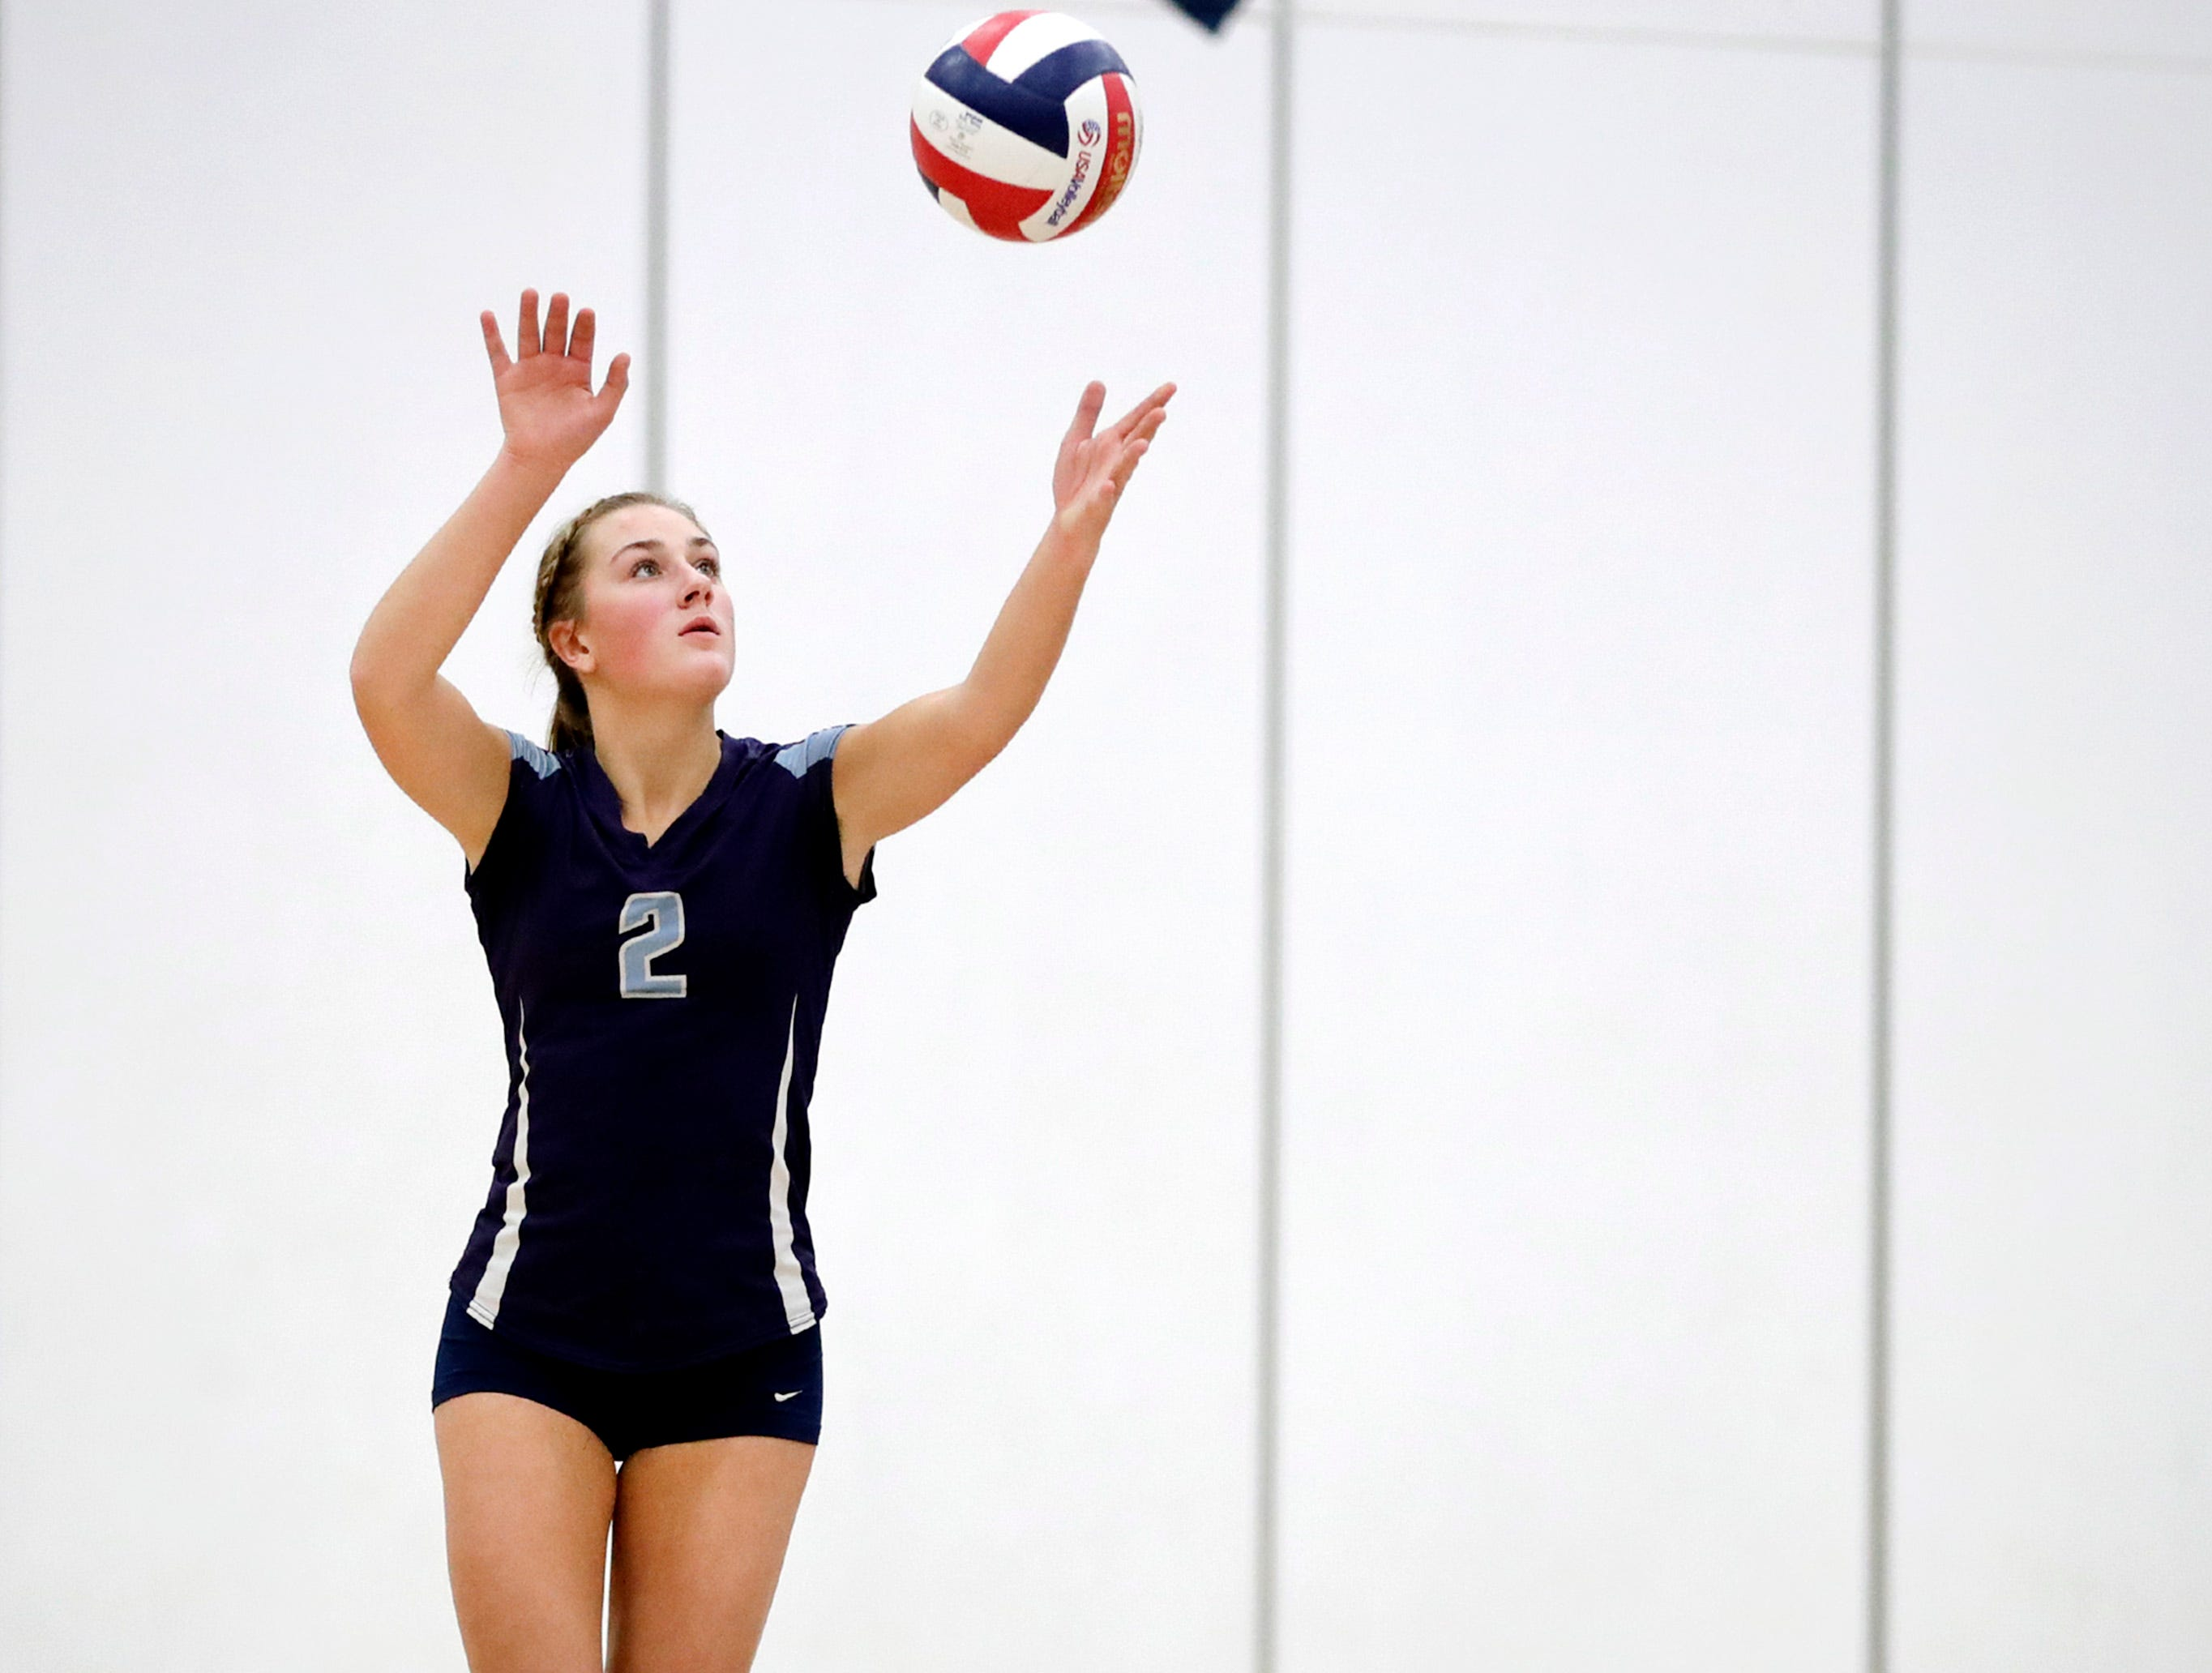 Little Chute High SchoolÕs Gabi Roemer serves to Xavier High School during their Division 2 semifinal match Thursday, Oct. 25, 2018, in Chilton, Wis.Danny Damiani/USA TODAY NETWORK-Wisconsin